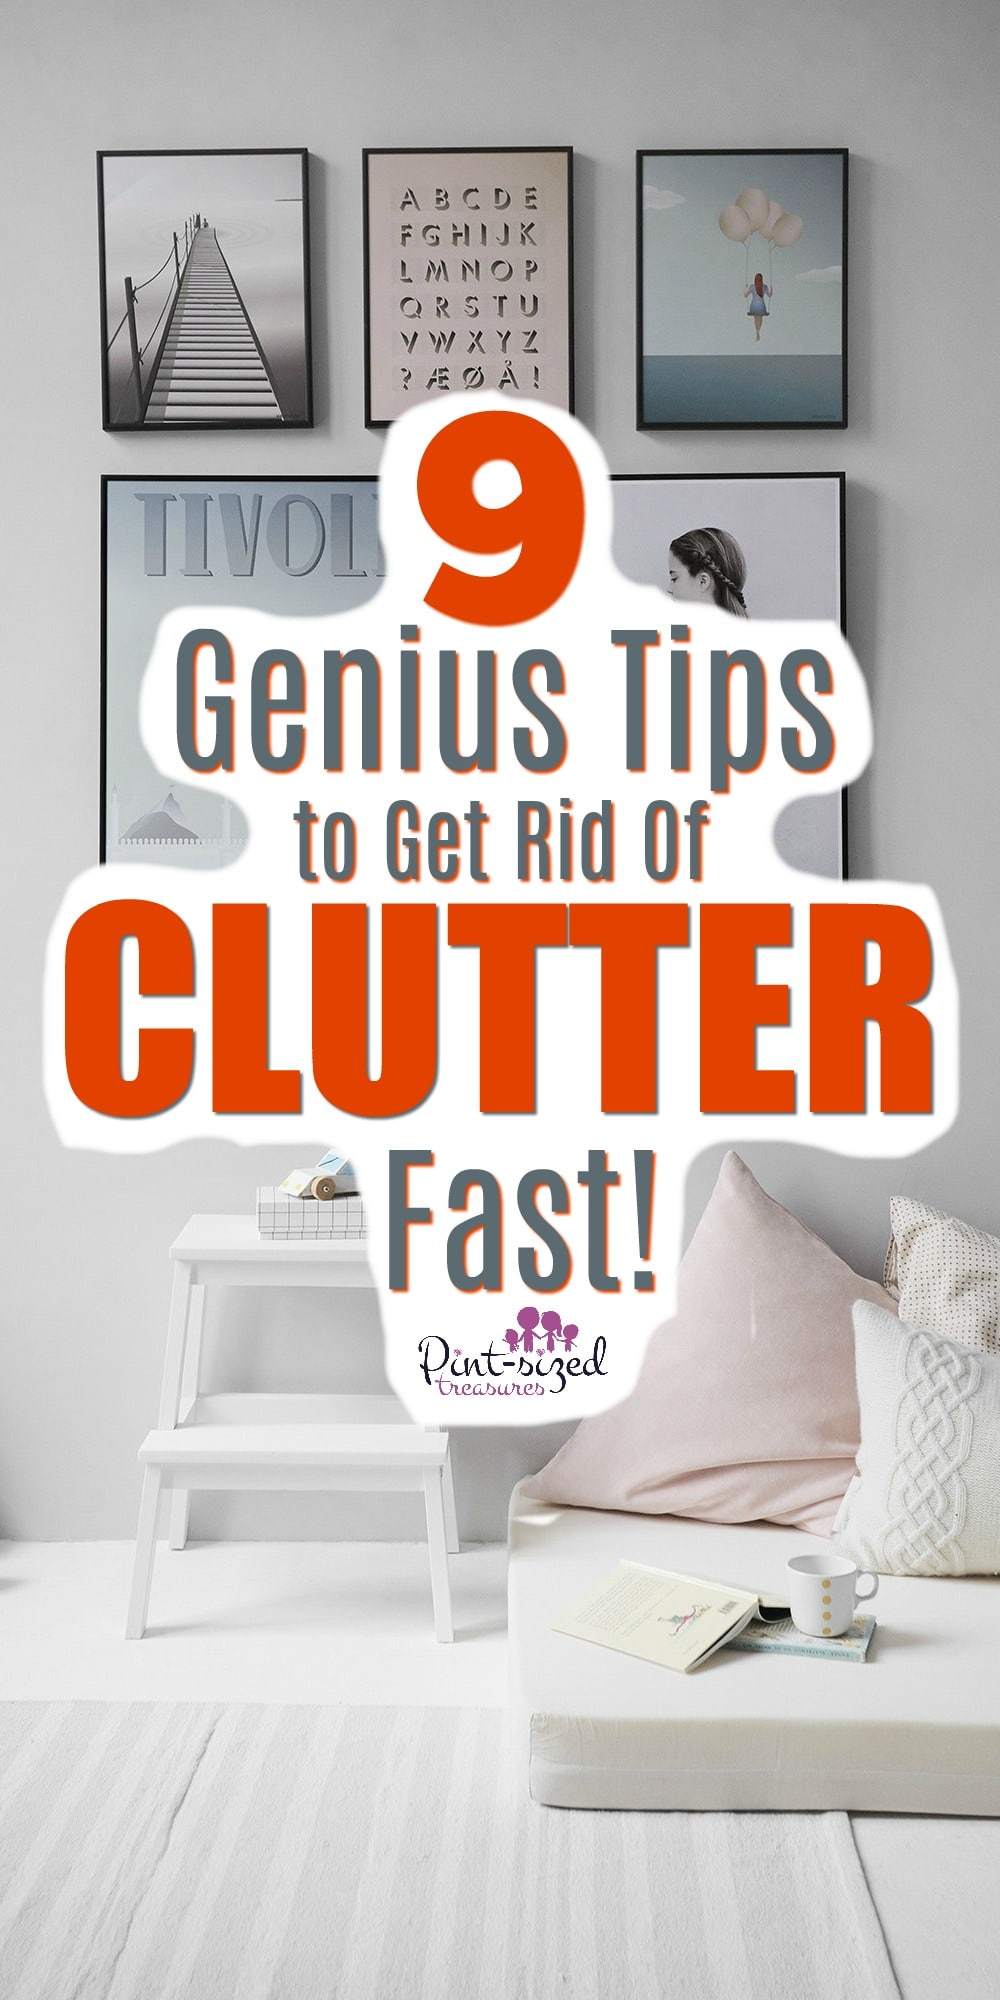 How to Get Rid of Clutter Fast